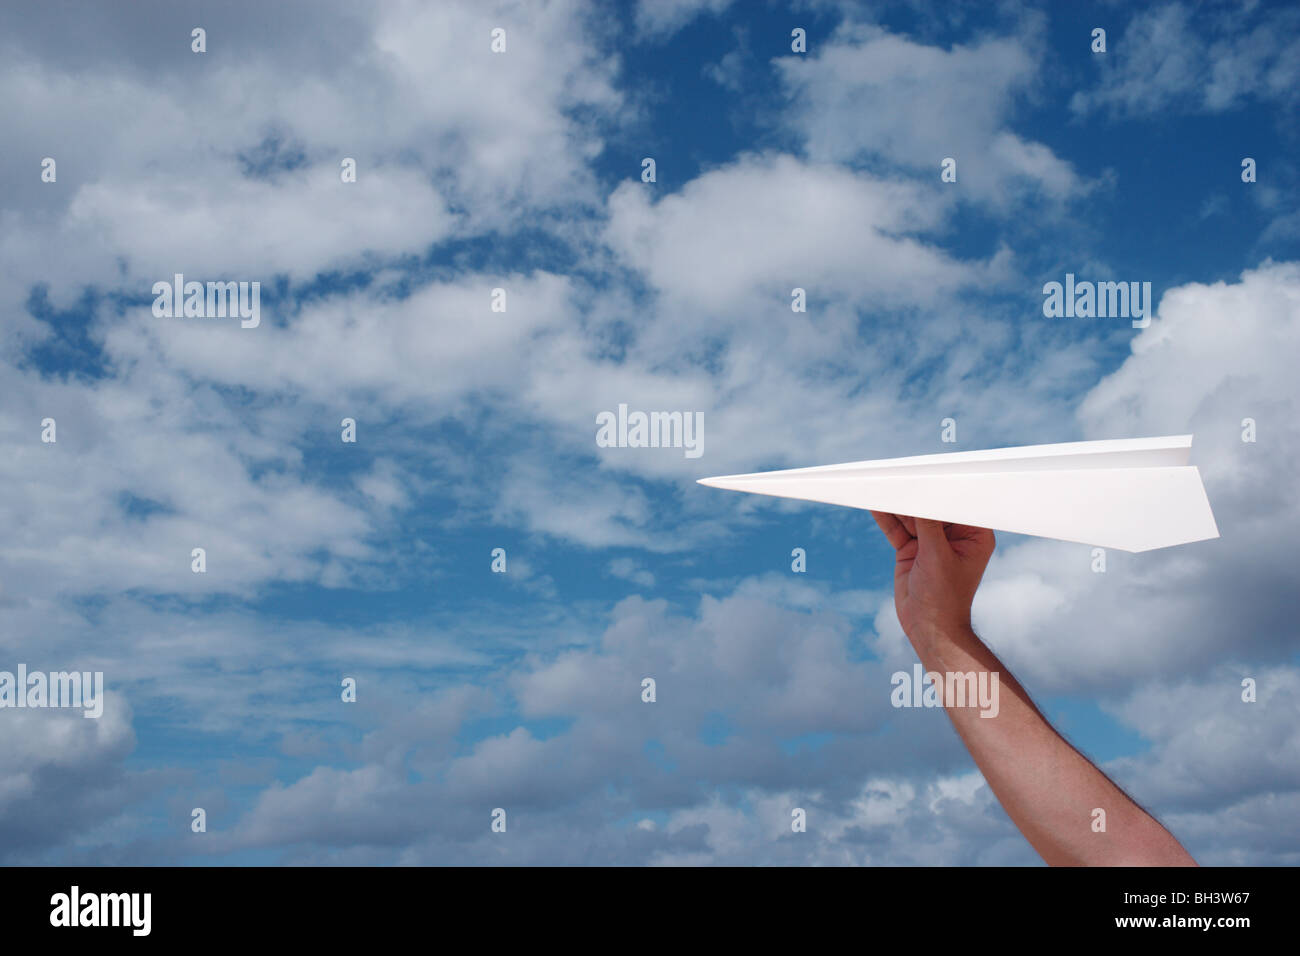 A man's hand holding a white paper airplane in a blue cloudy sky - Stock Image